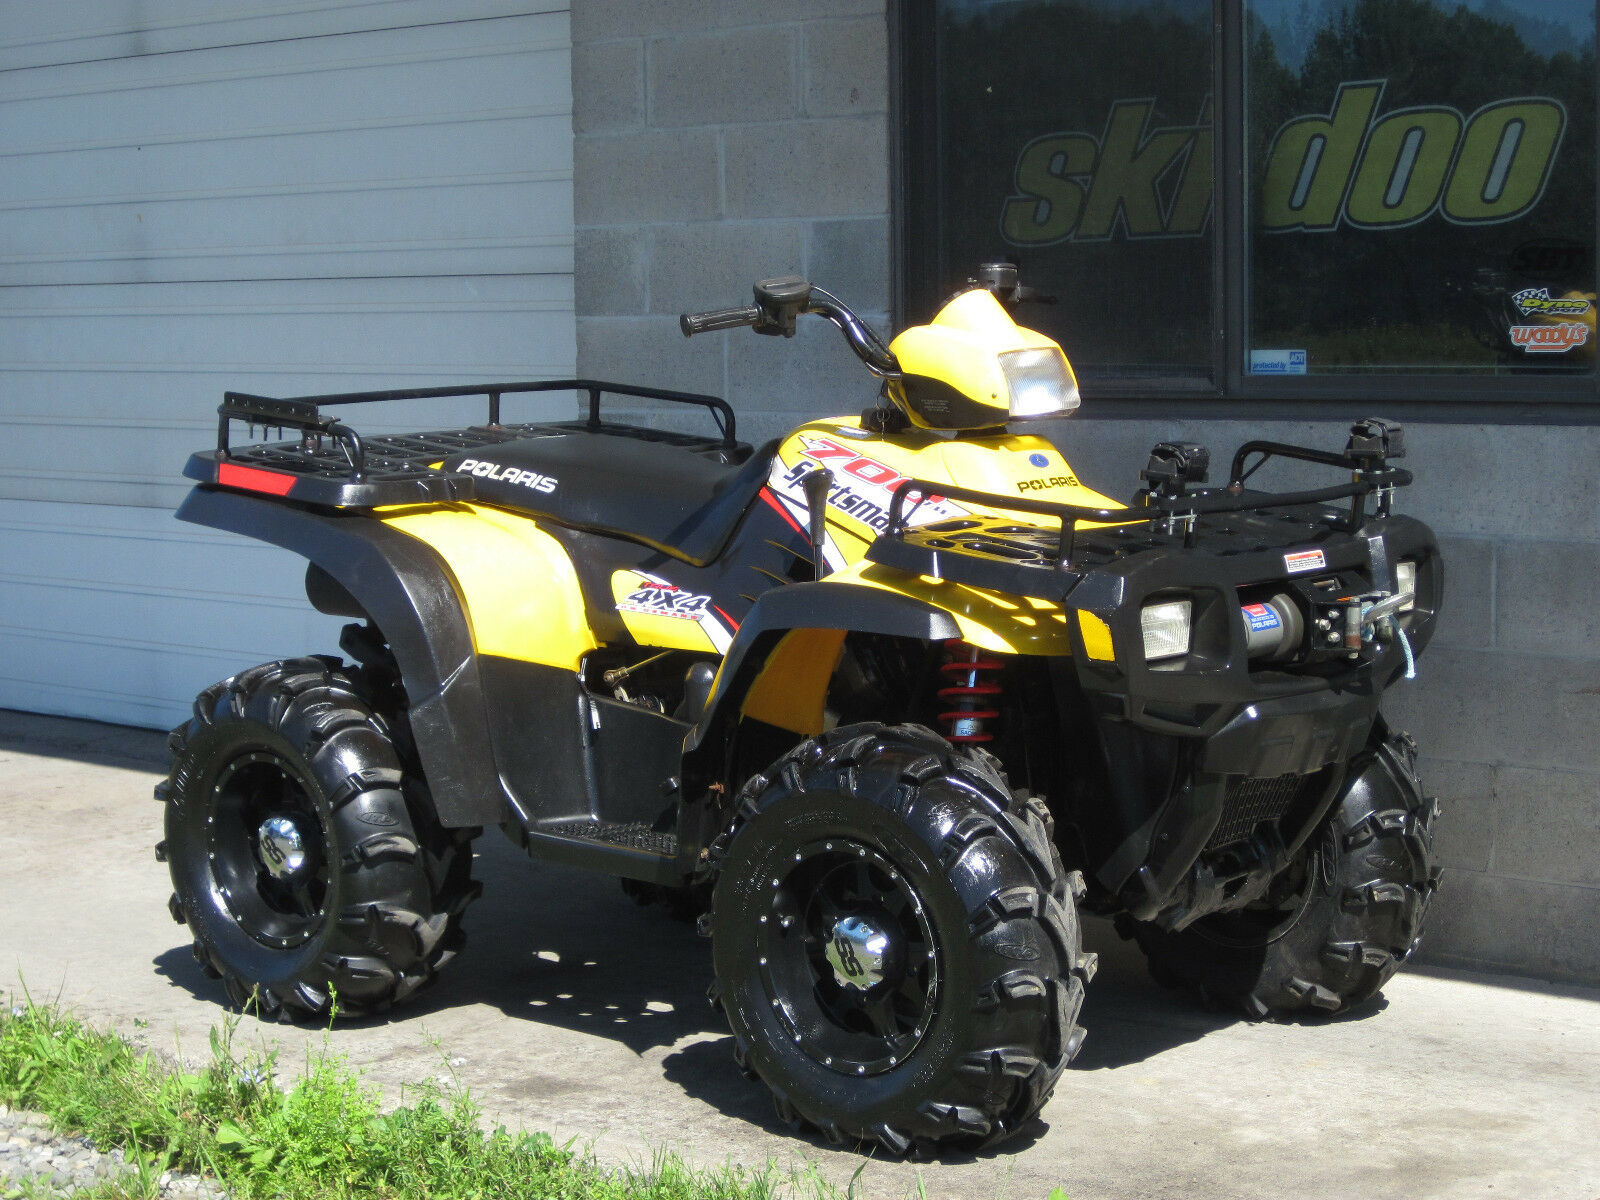 2004 polaris sportsman 700 twin 4x4 low miles cheap ship winch xp atv quad itp r used polaris. Black Bedroom Furniture Sets. Home Design Ideas